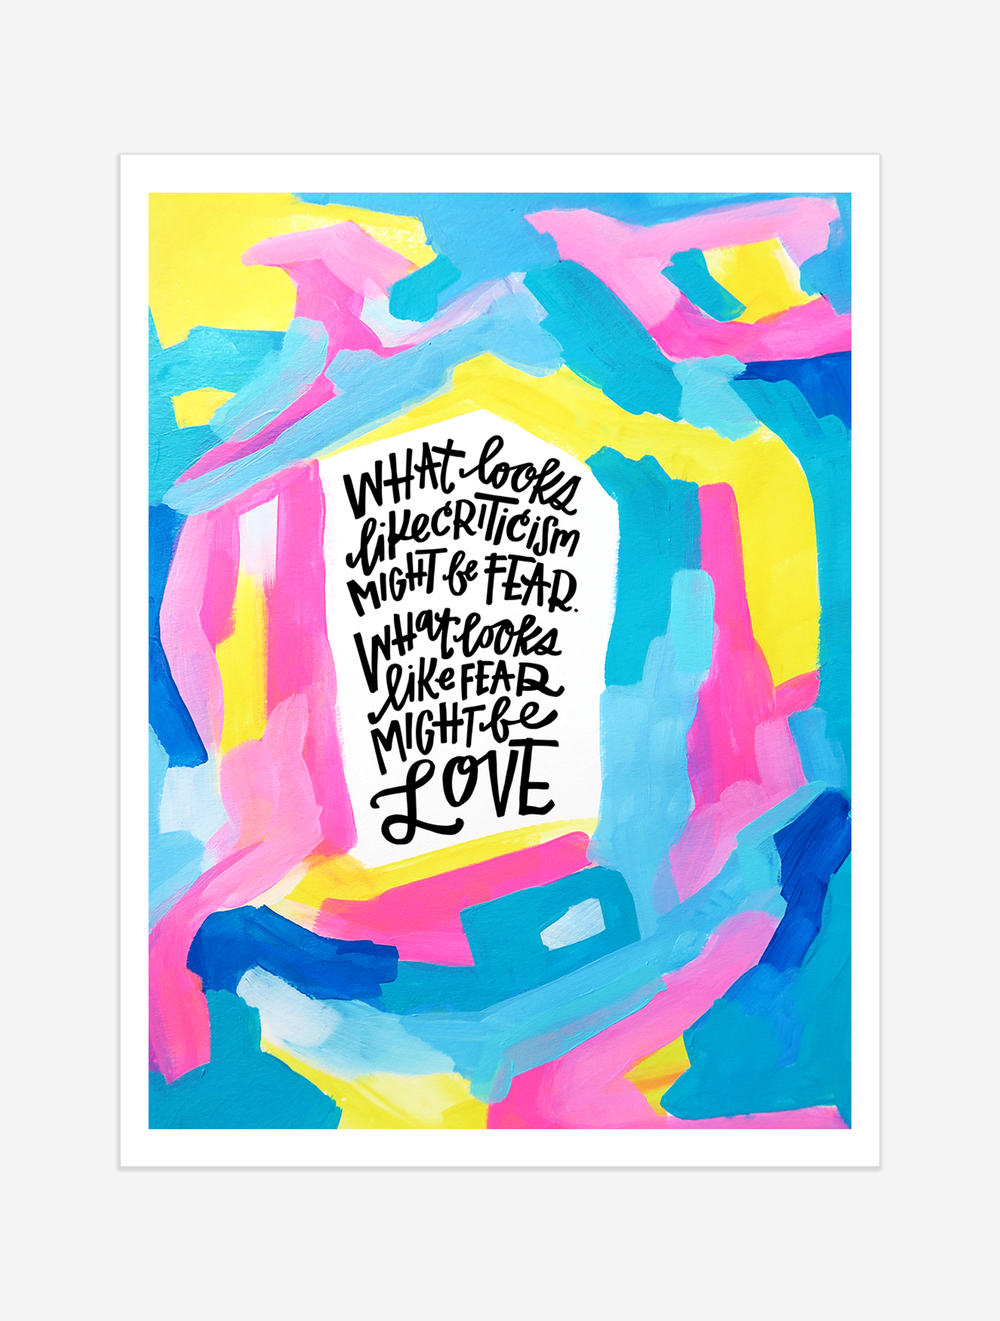 A reminder that the criticism you receive might be coming from a place of fear because of their love for you. $25 giclee print available at the Made Vibrant Art Shop.